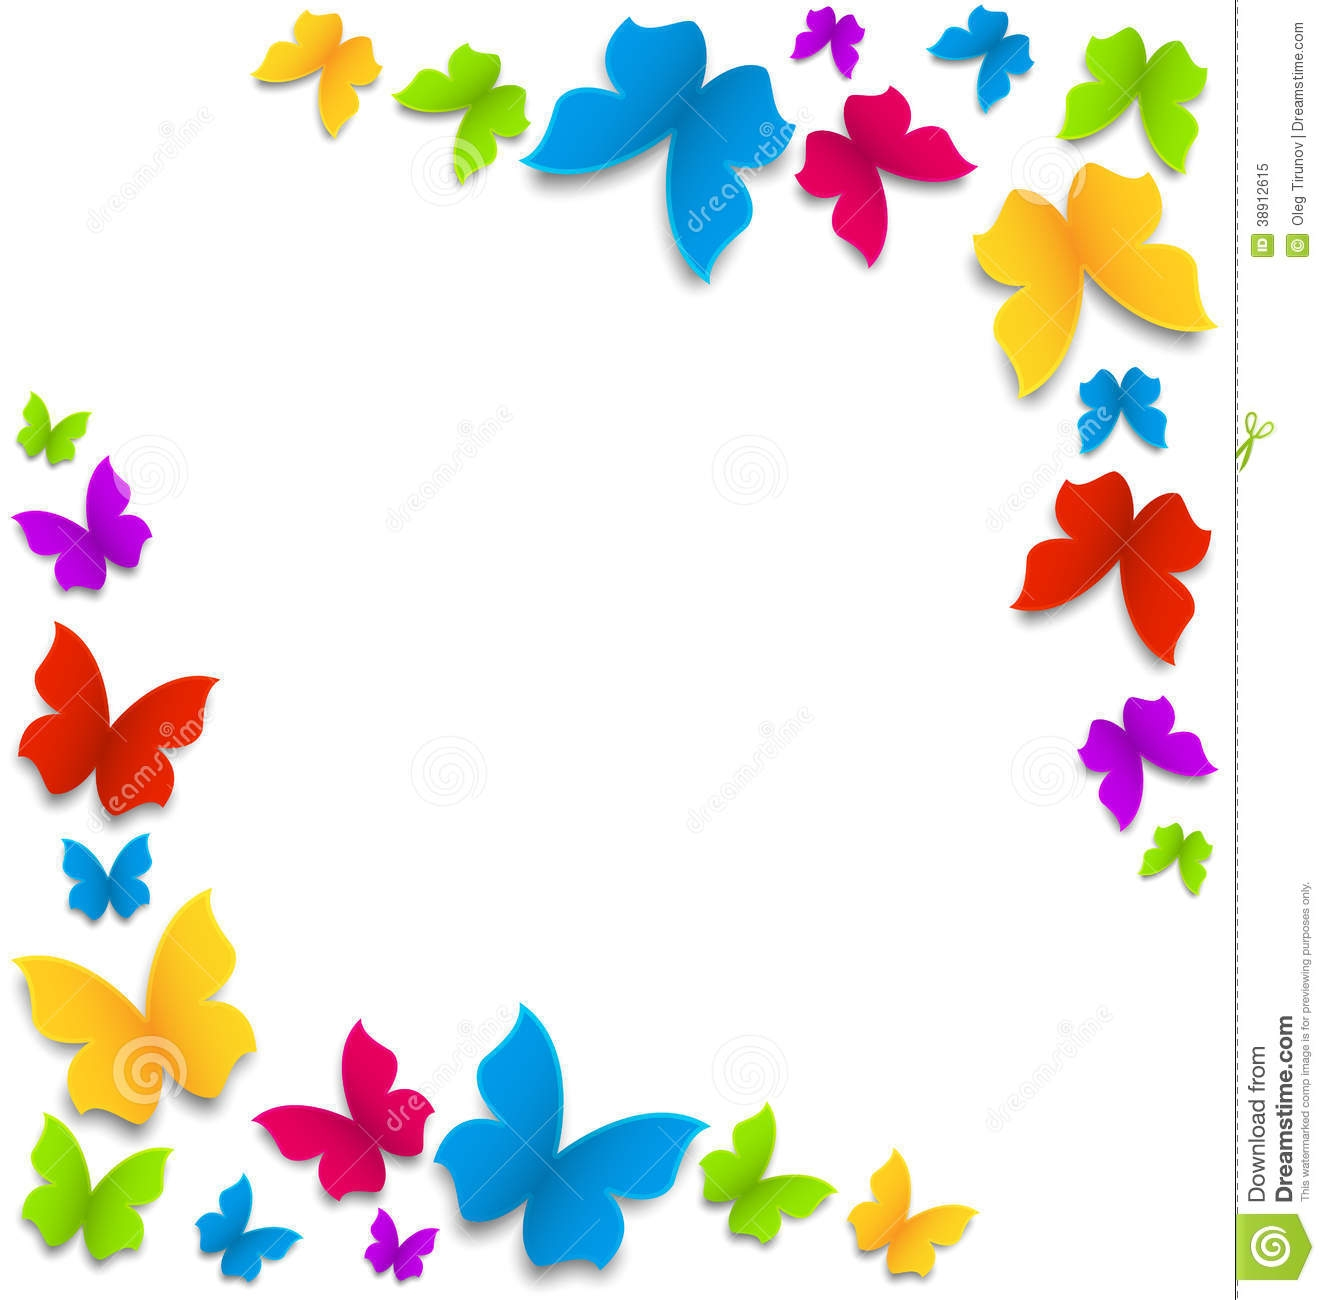 hight resolution of 1325x1300 rainbow butterfly clipart flower butterfly